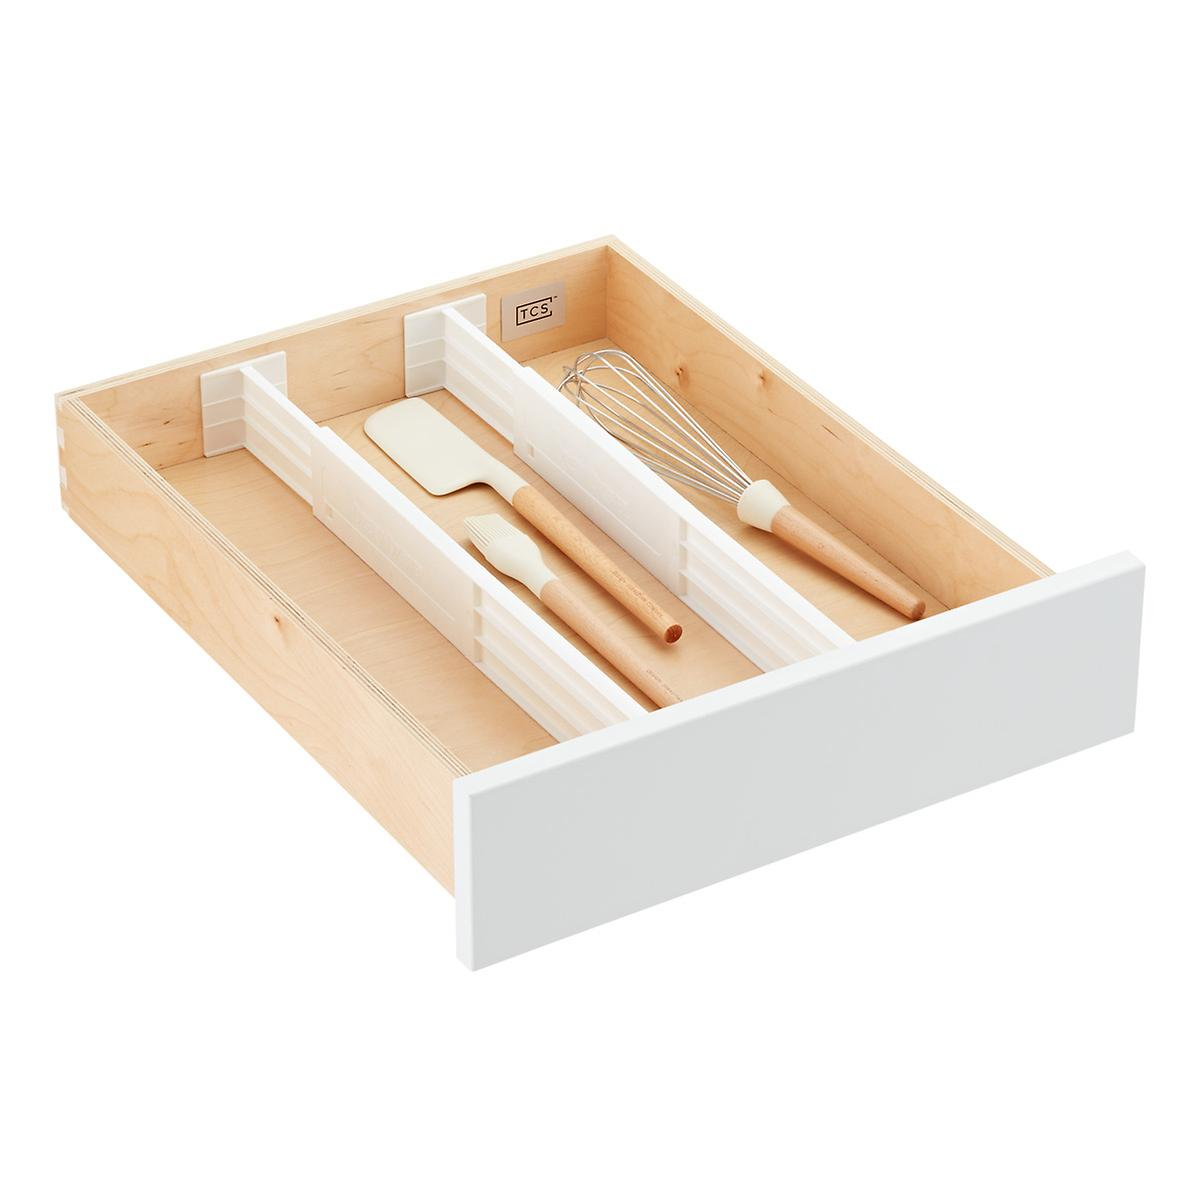 "3"" Dream Drawer Organizers"